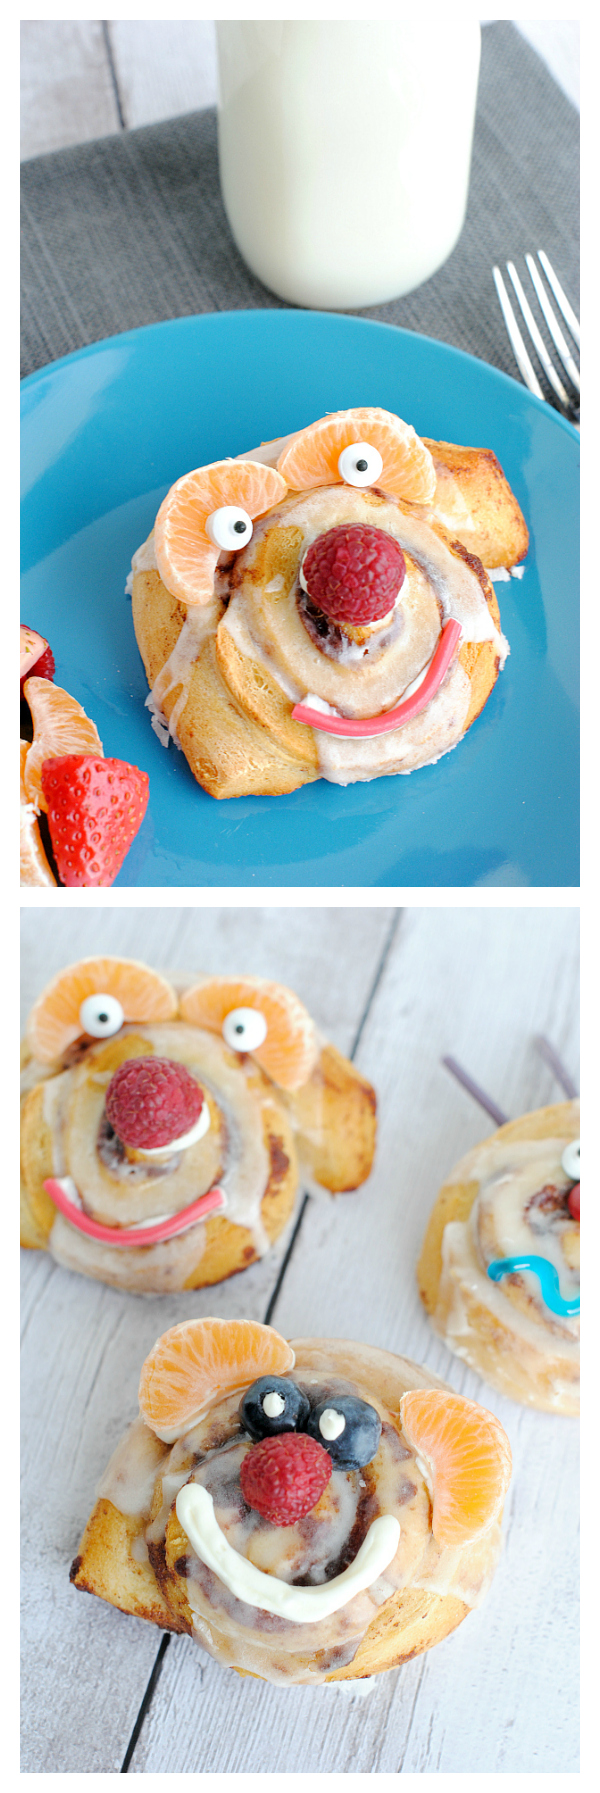 Funny Face Cinnamon Rolls-Fun Breakfast Idea for Kids! They will love it if you make it for them or they can make their own! #kids #breakfast